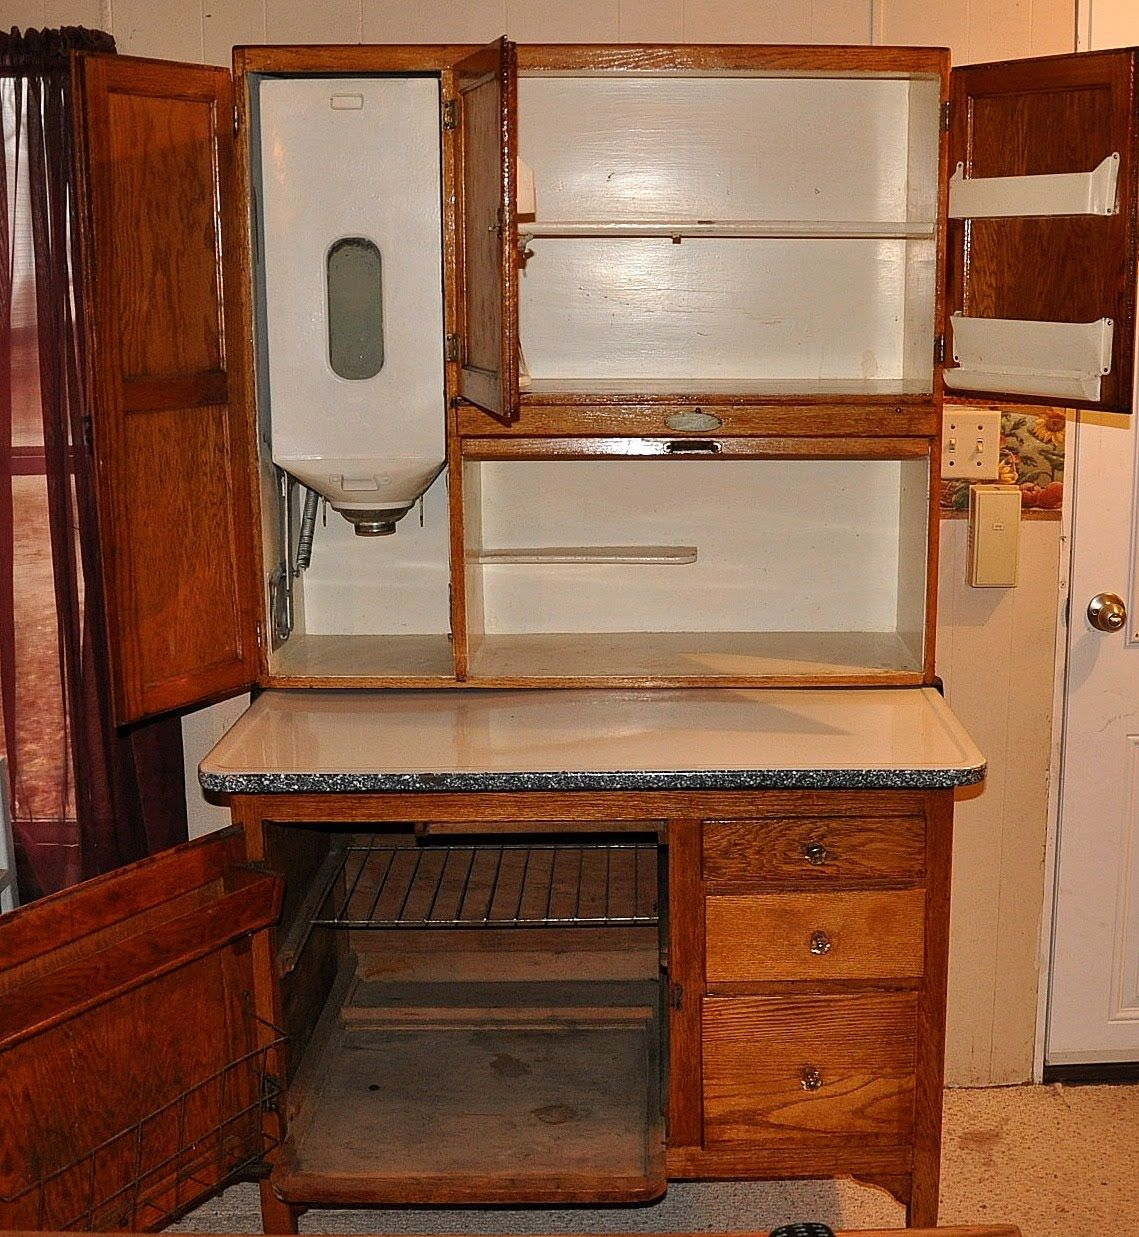 Antique Hoosier Cabinet for the Kitchen, This is like mine only I don't - Antique Hoosier Cabinet For The Kitchen, This Is Like Mine Only I